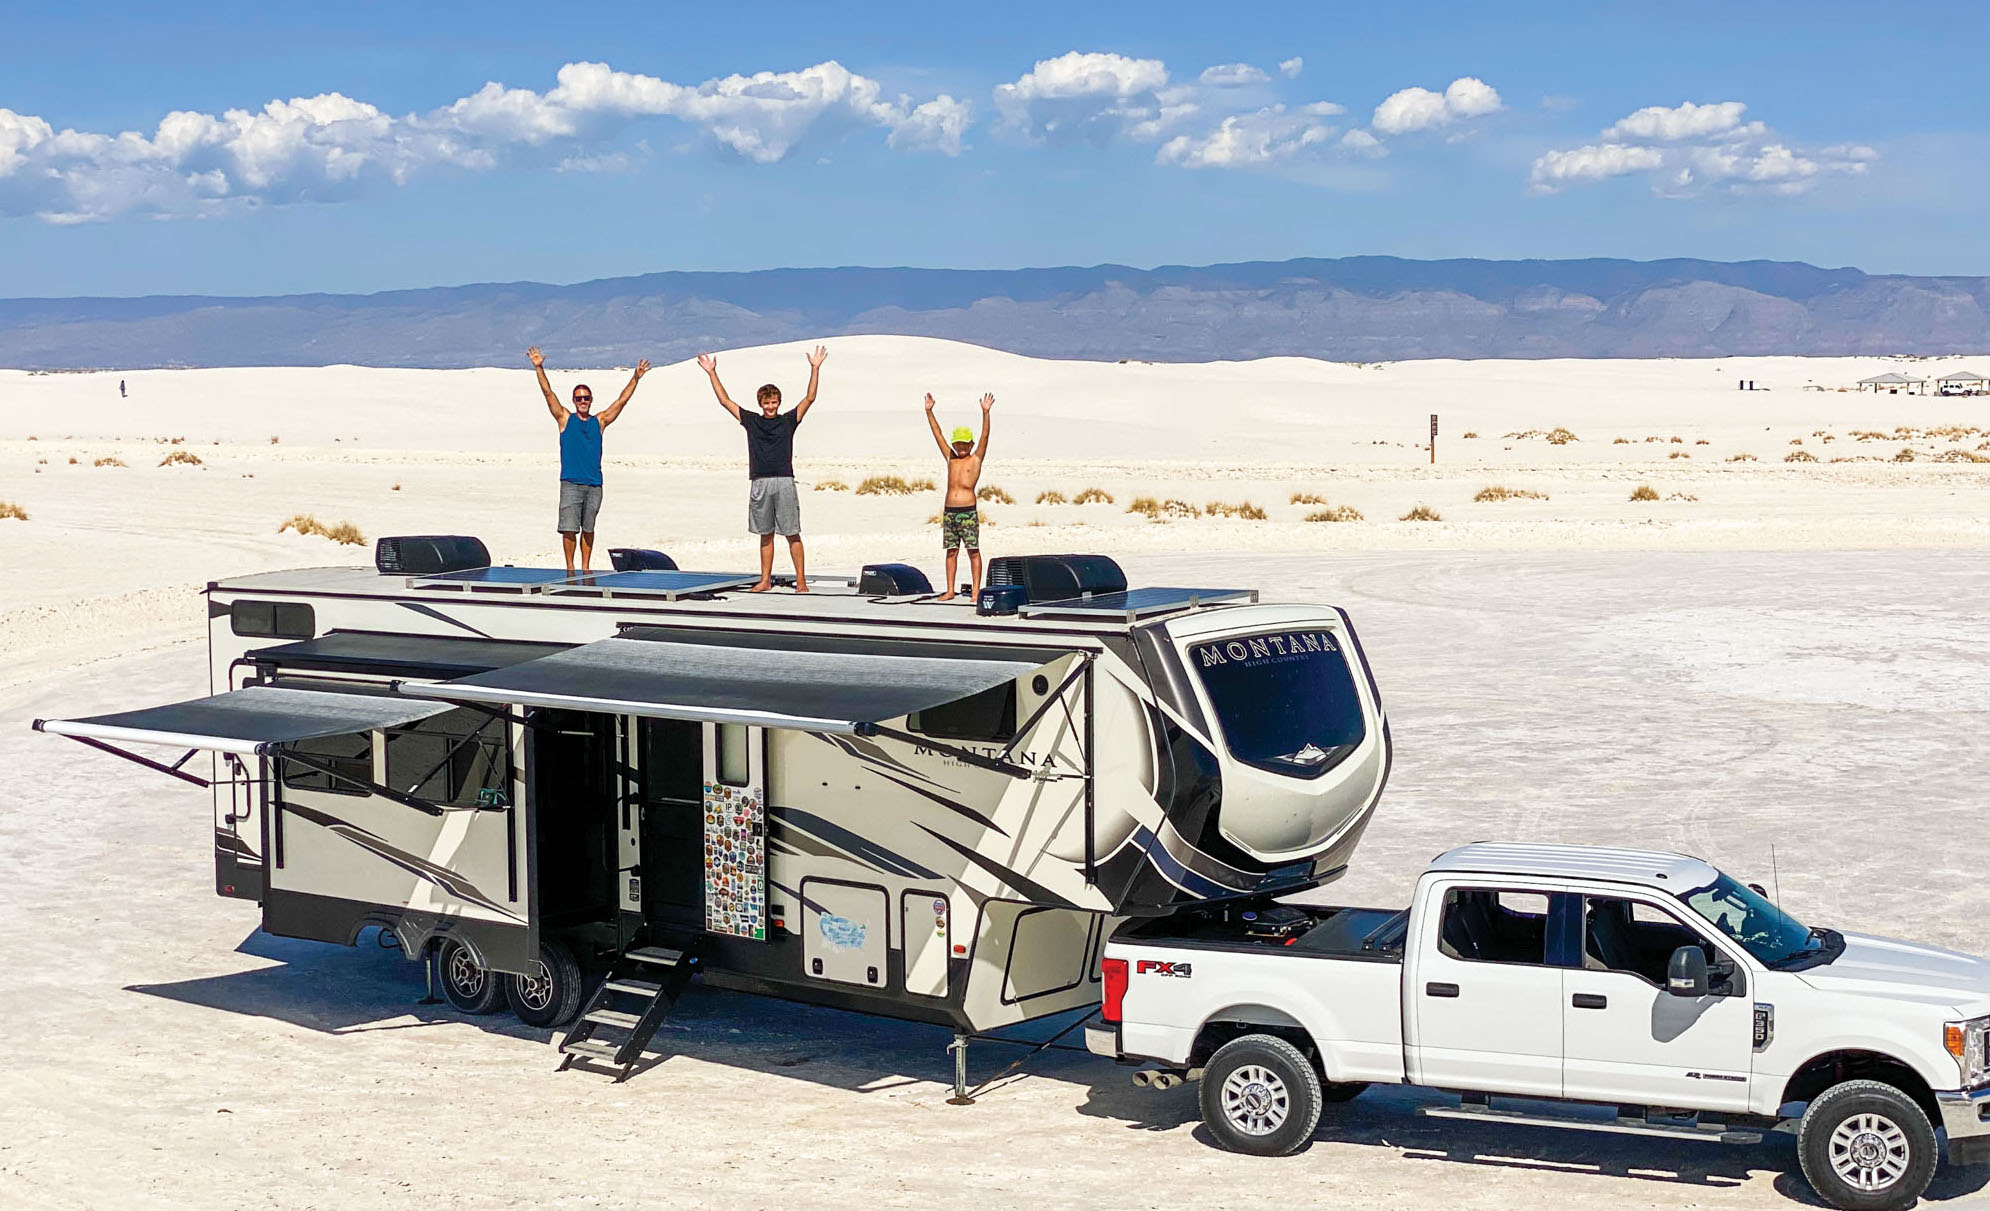 Crazy Family Adventure on top of their RV